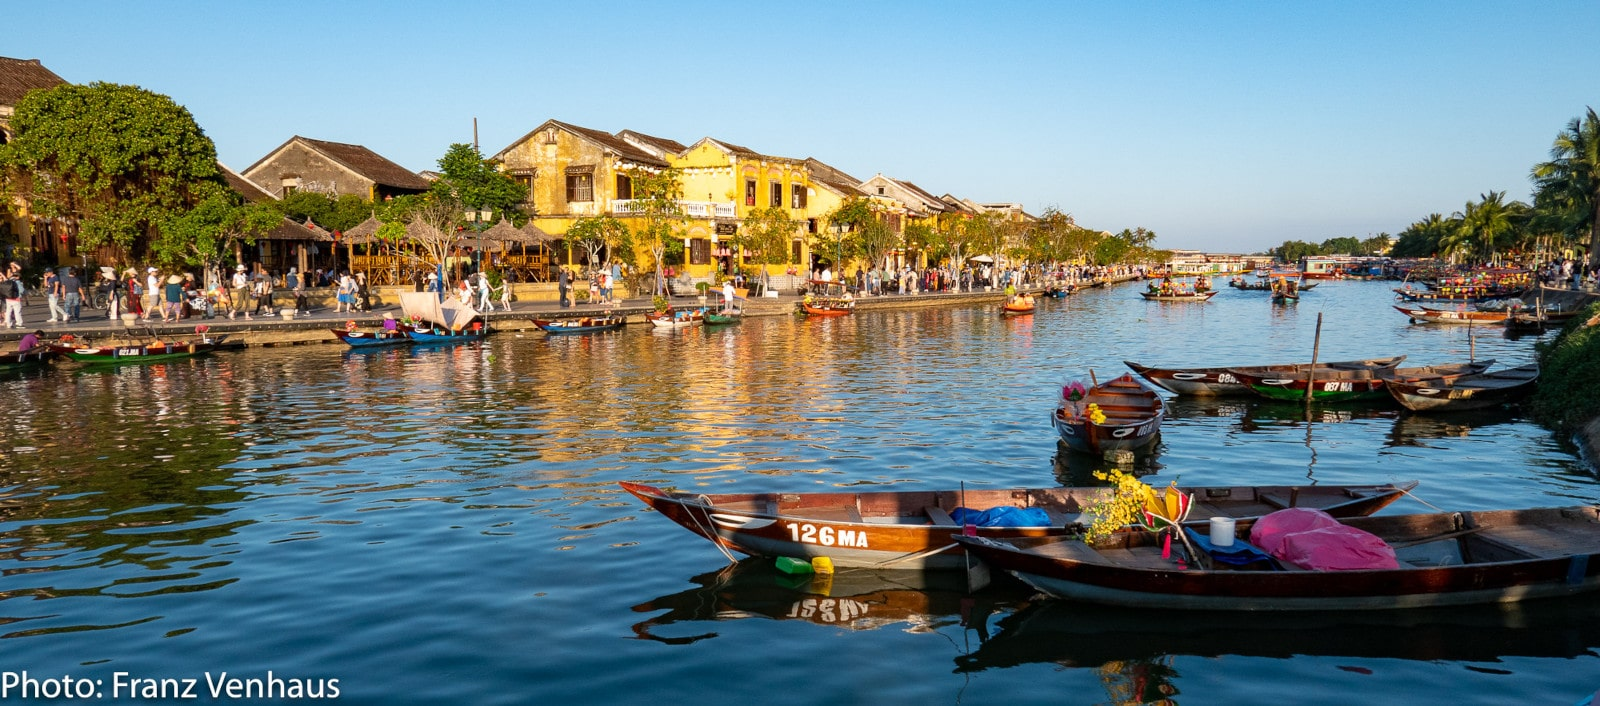 Image of boats on the water in Hoi An's old town in vietnam